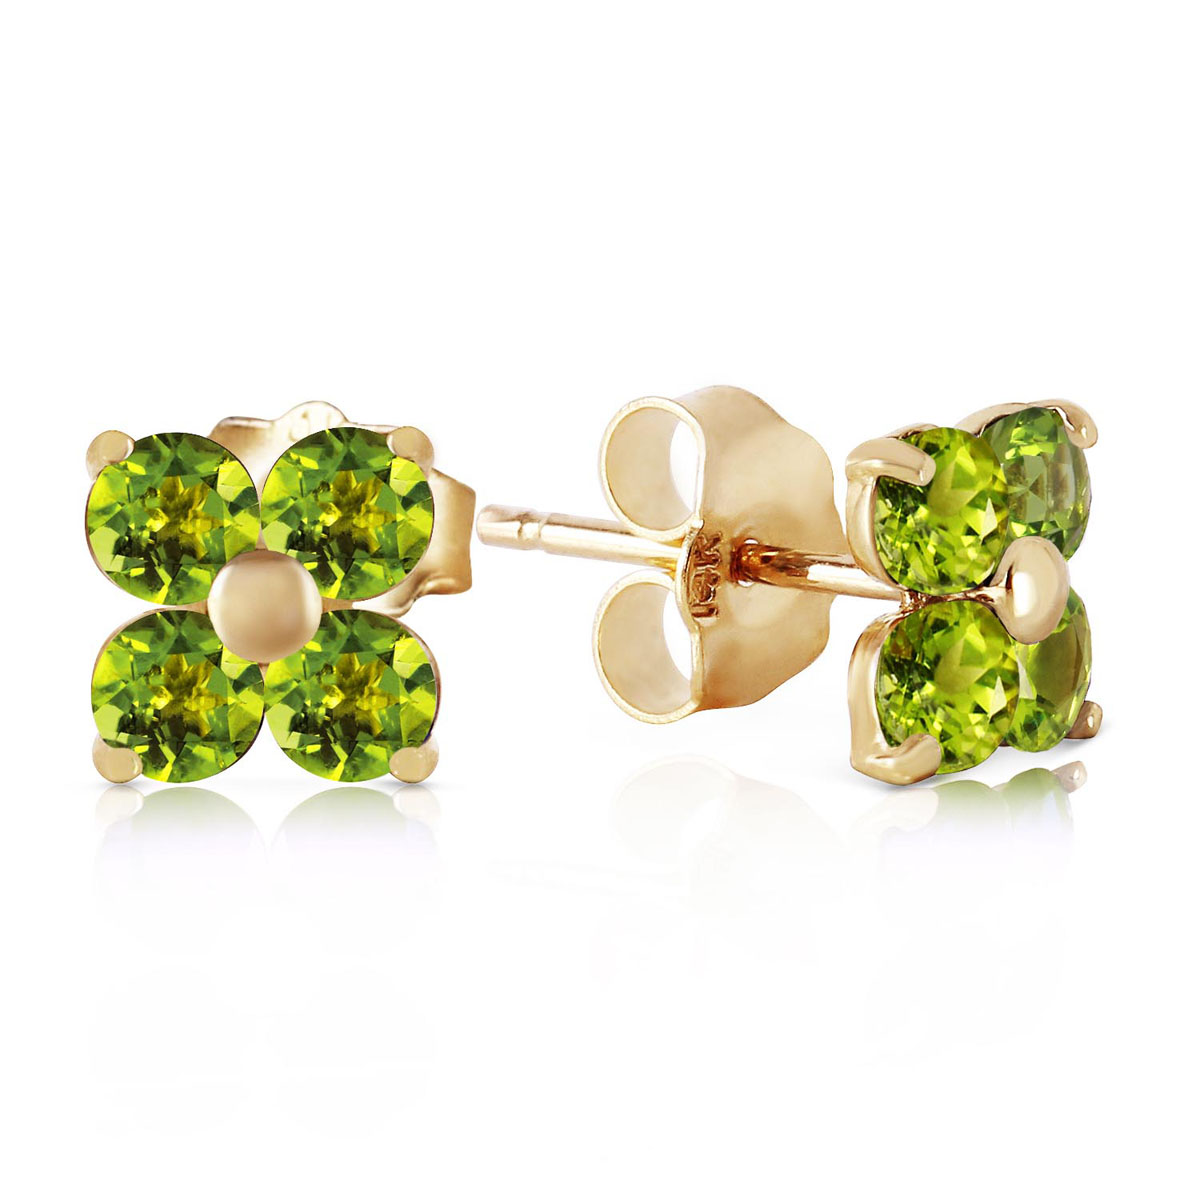 Peridot Clover Stud Earrings 1.15 ctw in 9ct Gold